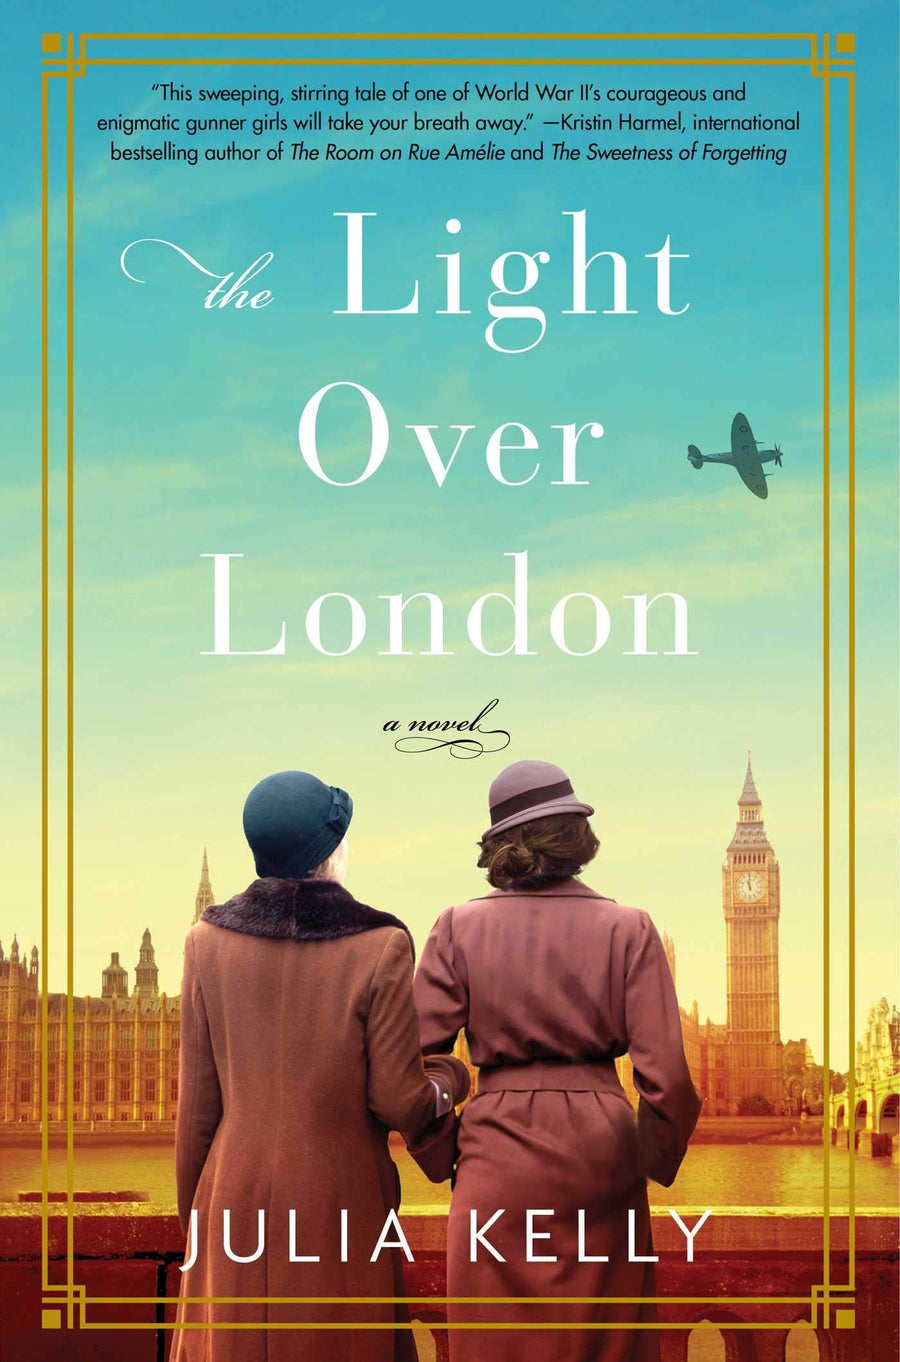 The Light Over London by Julia Kelly